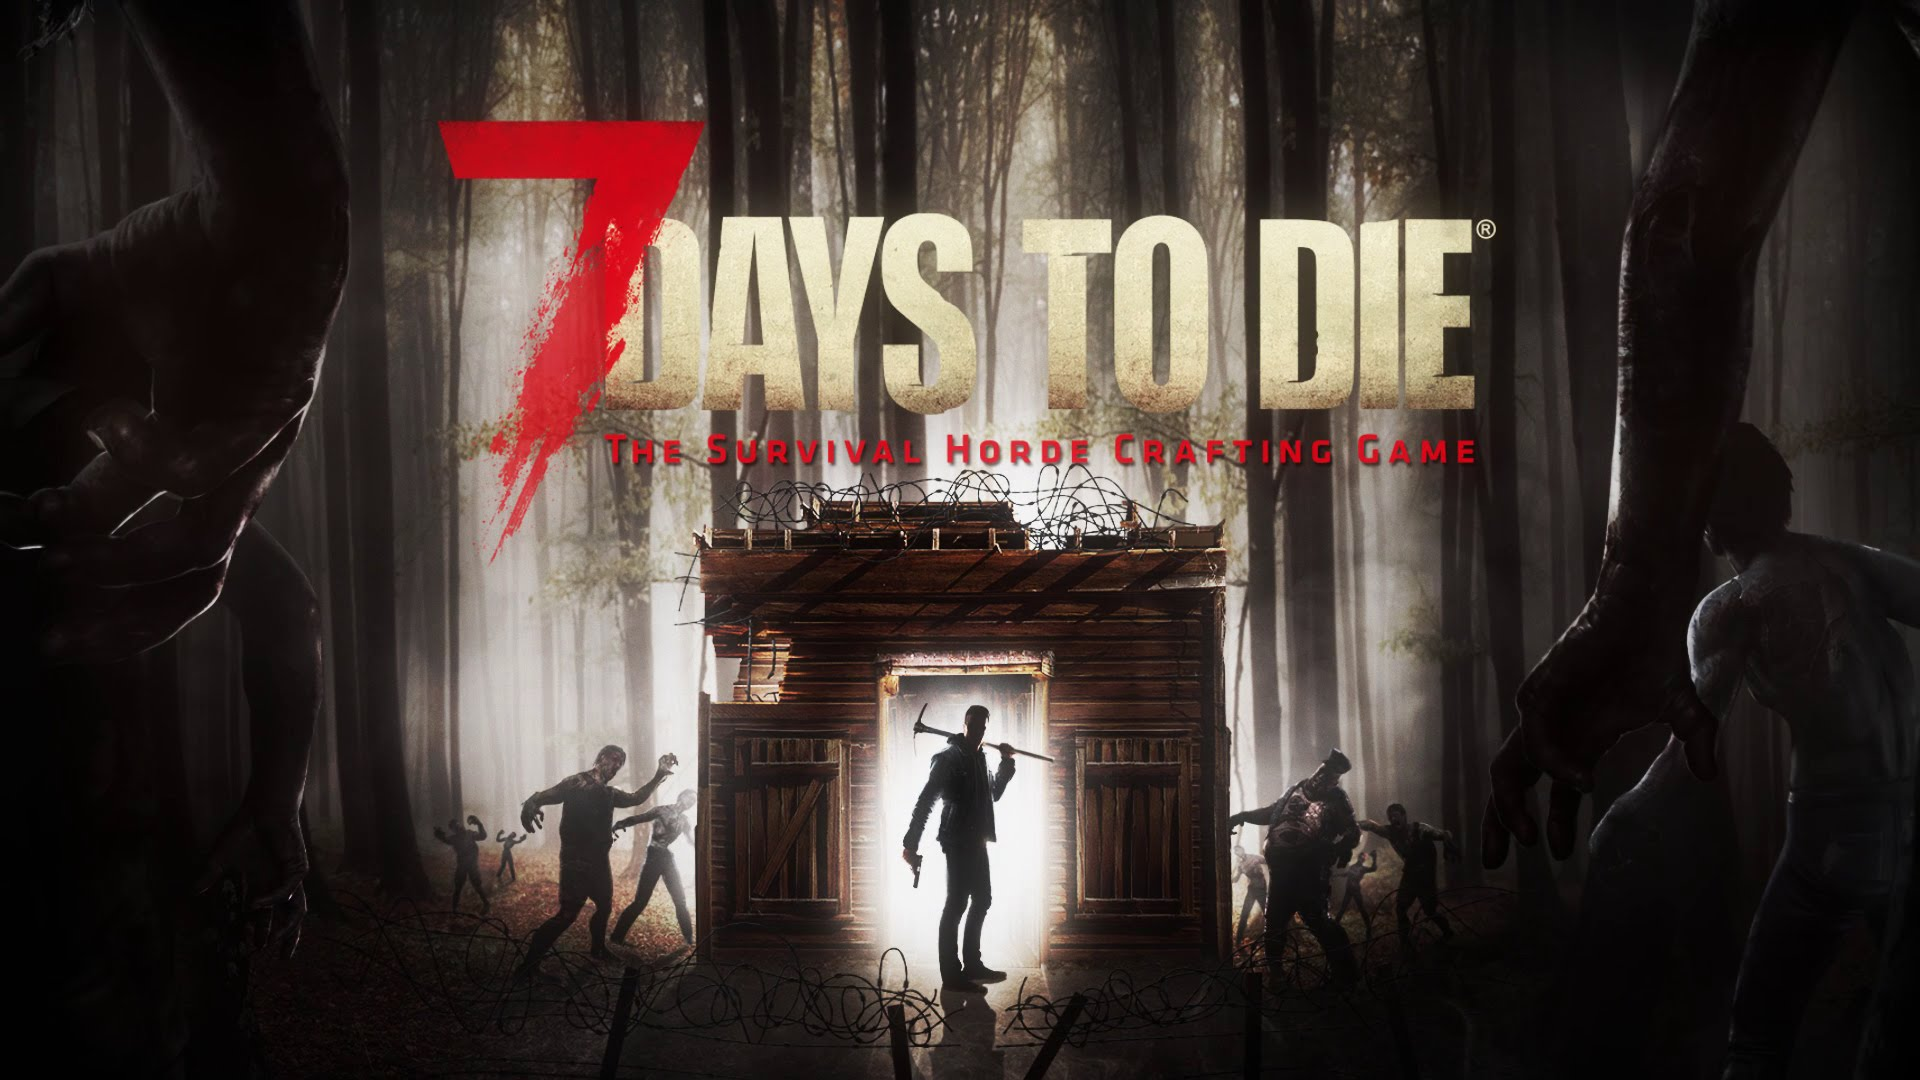 7 Days to Die telecharger gratuit de PC et Torrent